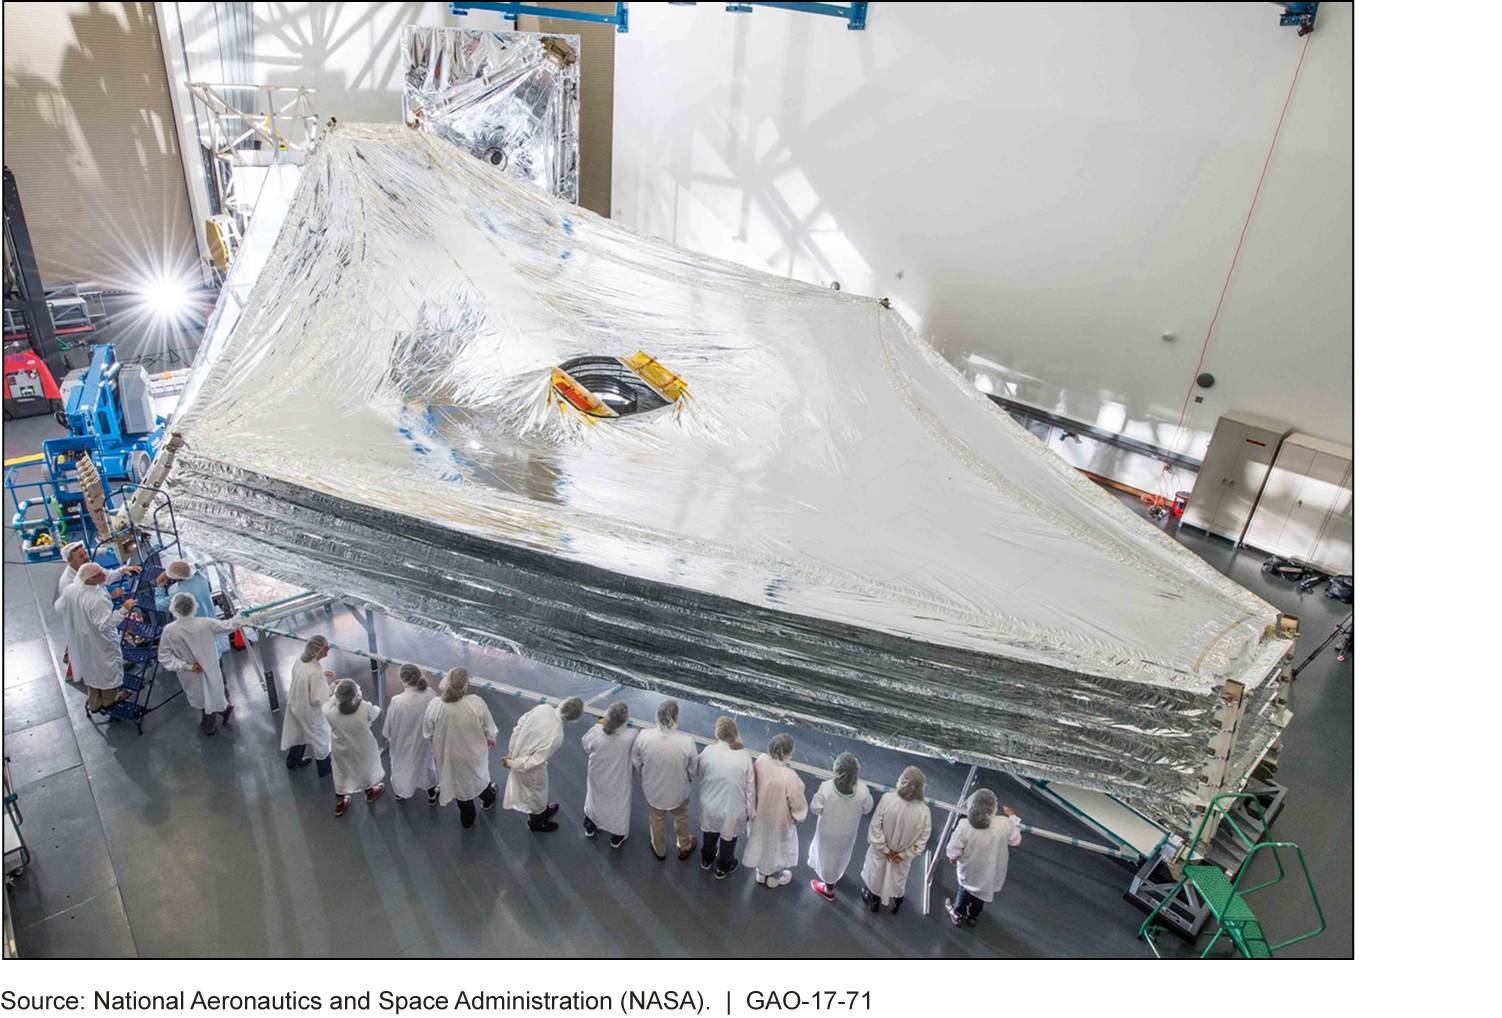 Five stacked layers of JWST's sunshield, which protects the spacecraft from the heat of the sun.